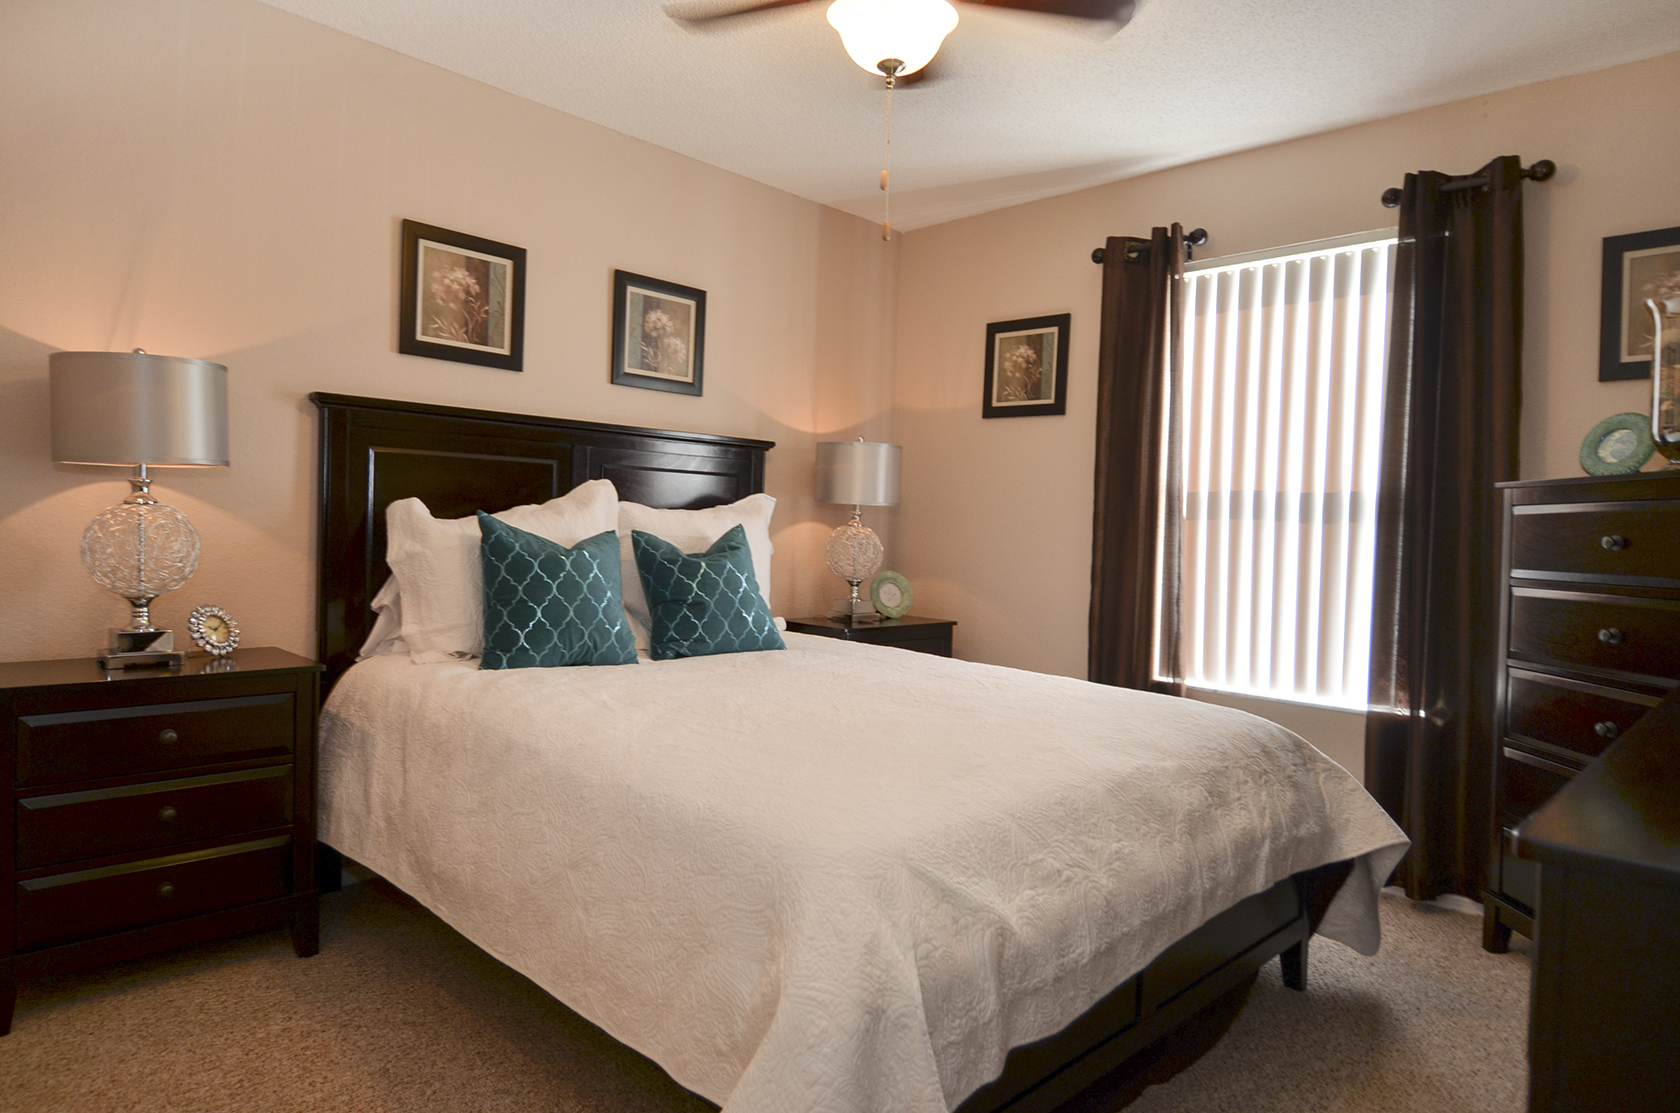 beautiful design in our apartments for rent in naples, florida